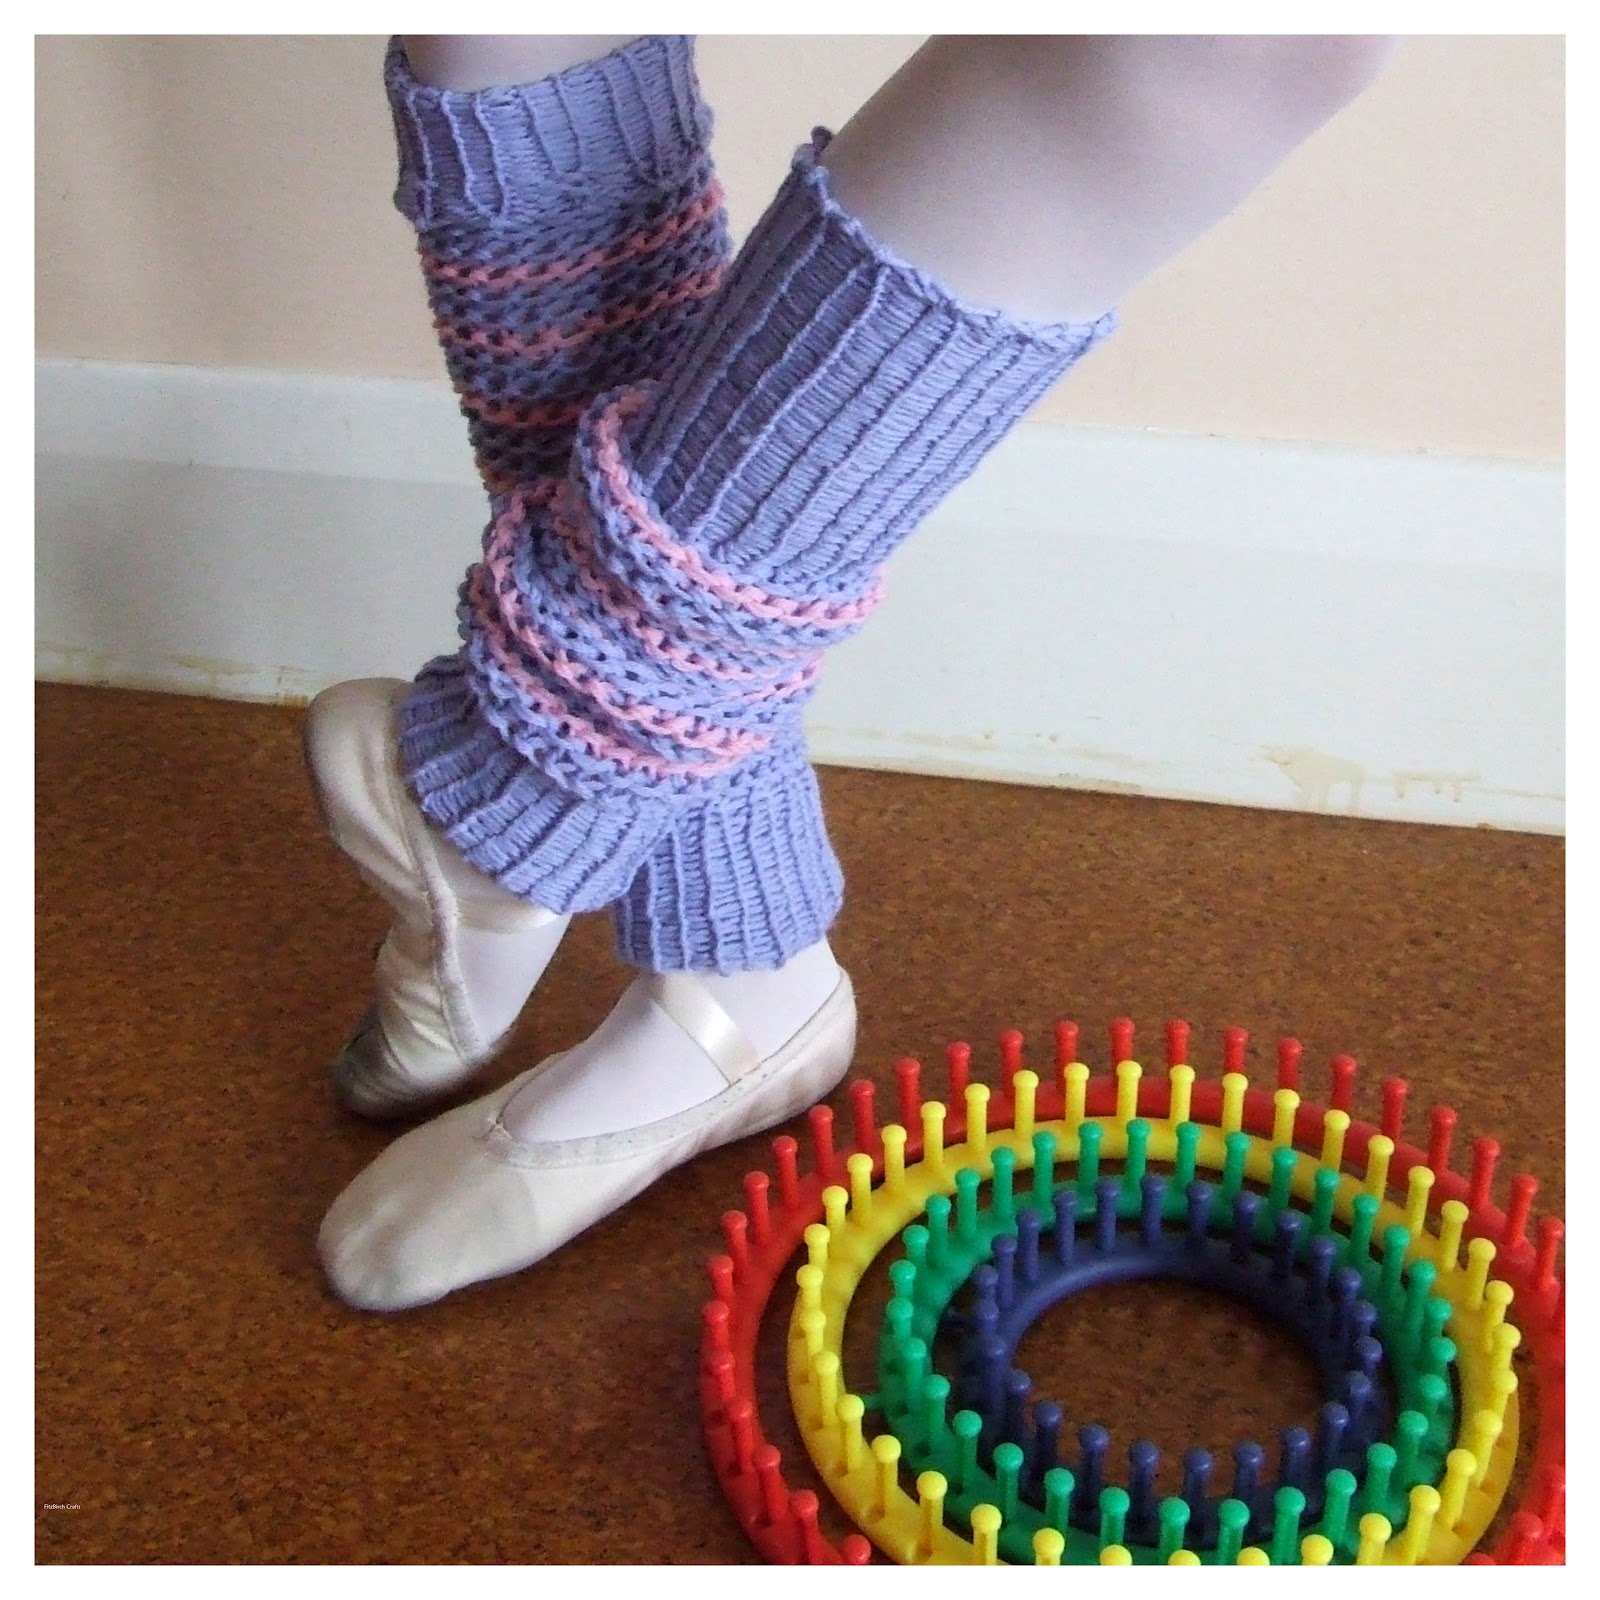 FitzBirch Crafts: Knifty Loom Knit Leg Warmers